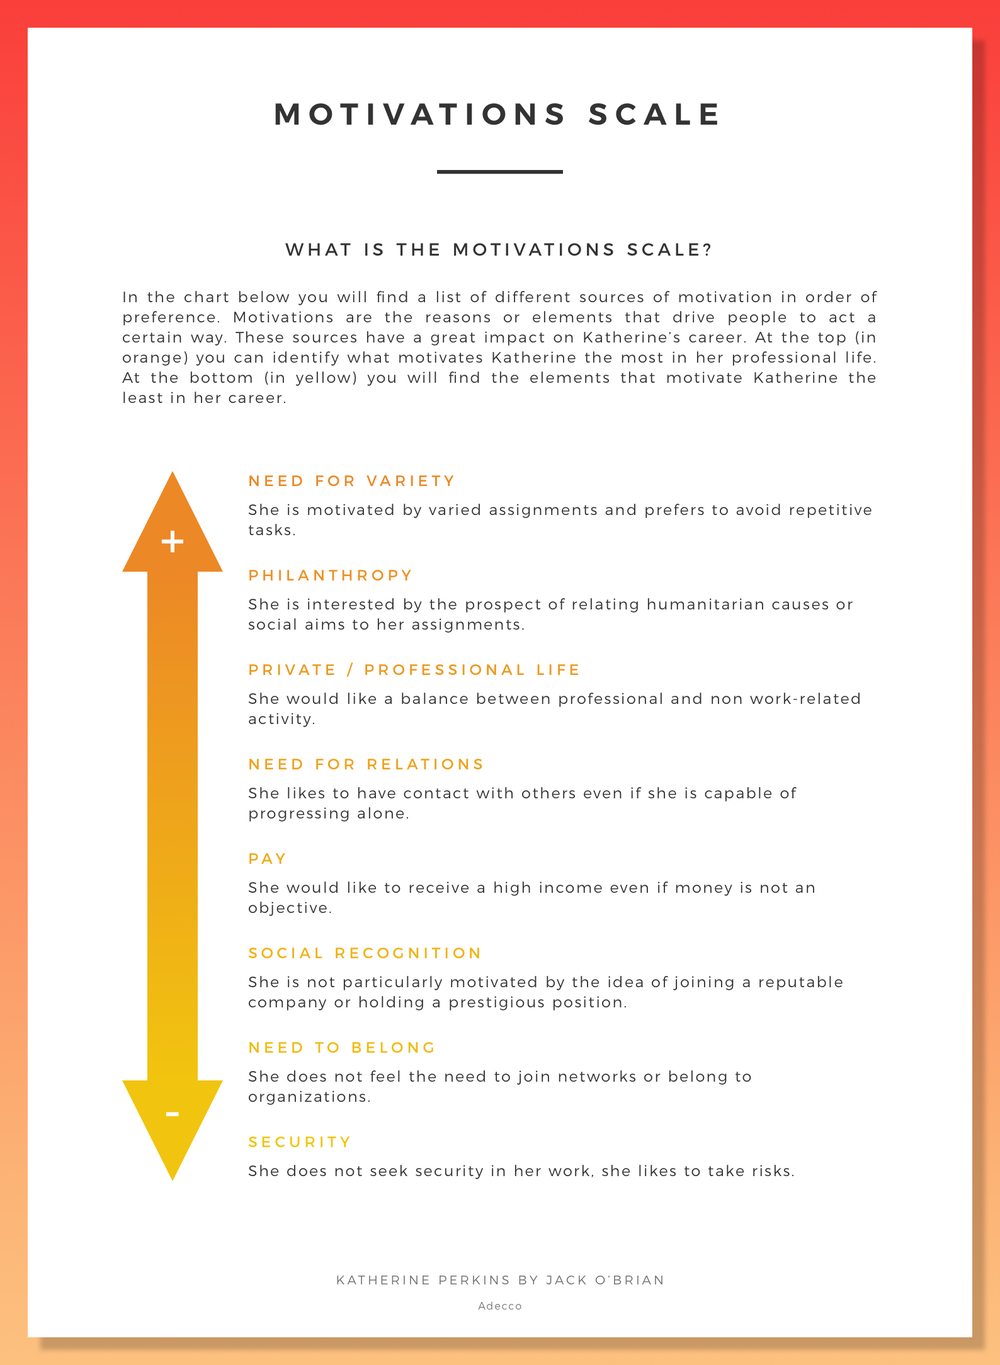 21_motivations_scale_[third]@2x.png